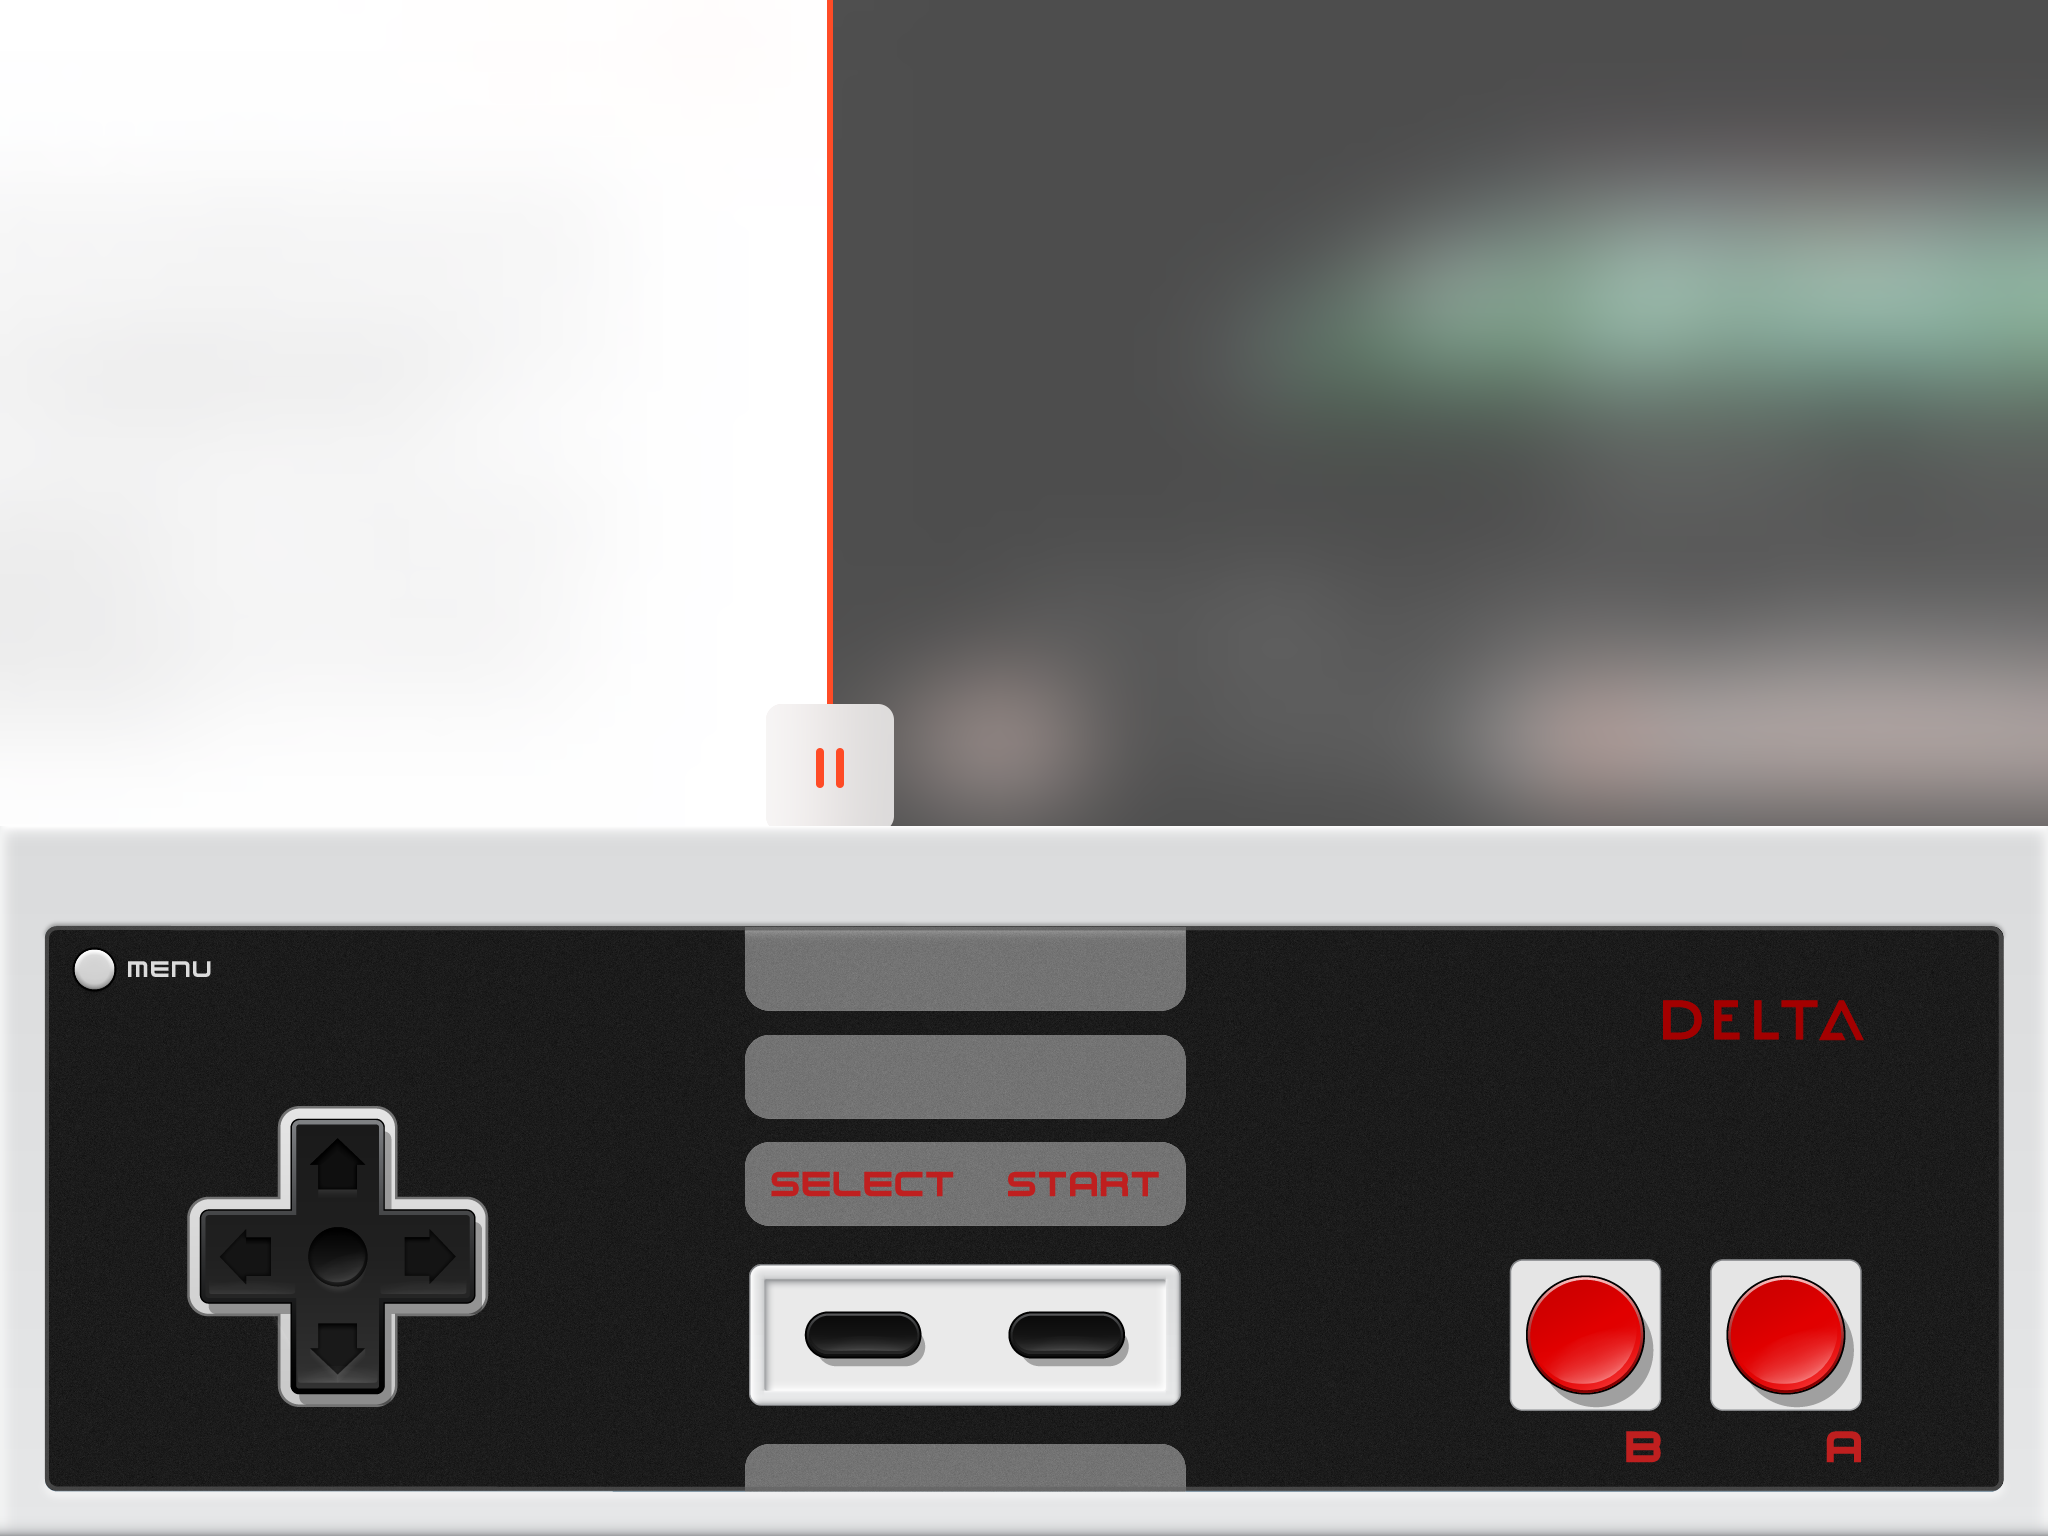 Delta Lite NES emulator: How to try it out